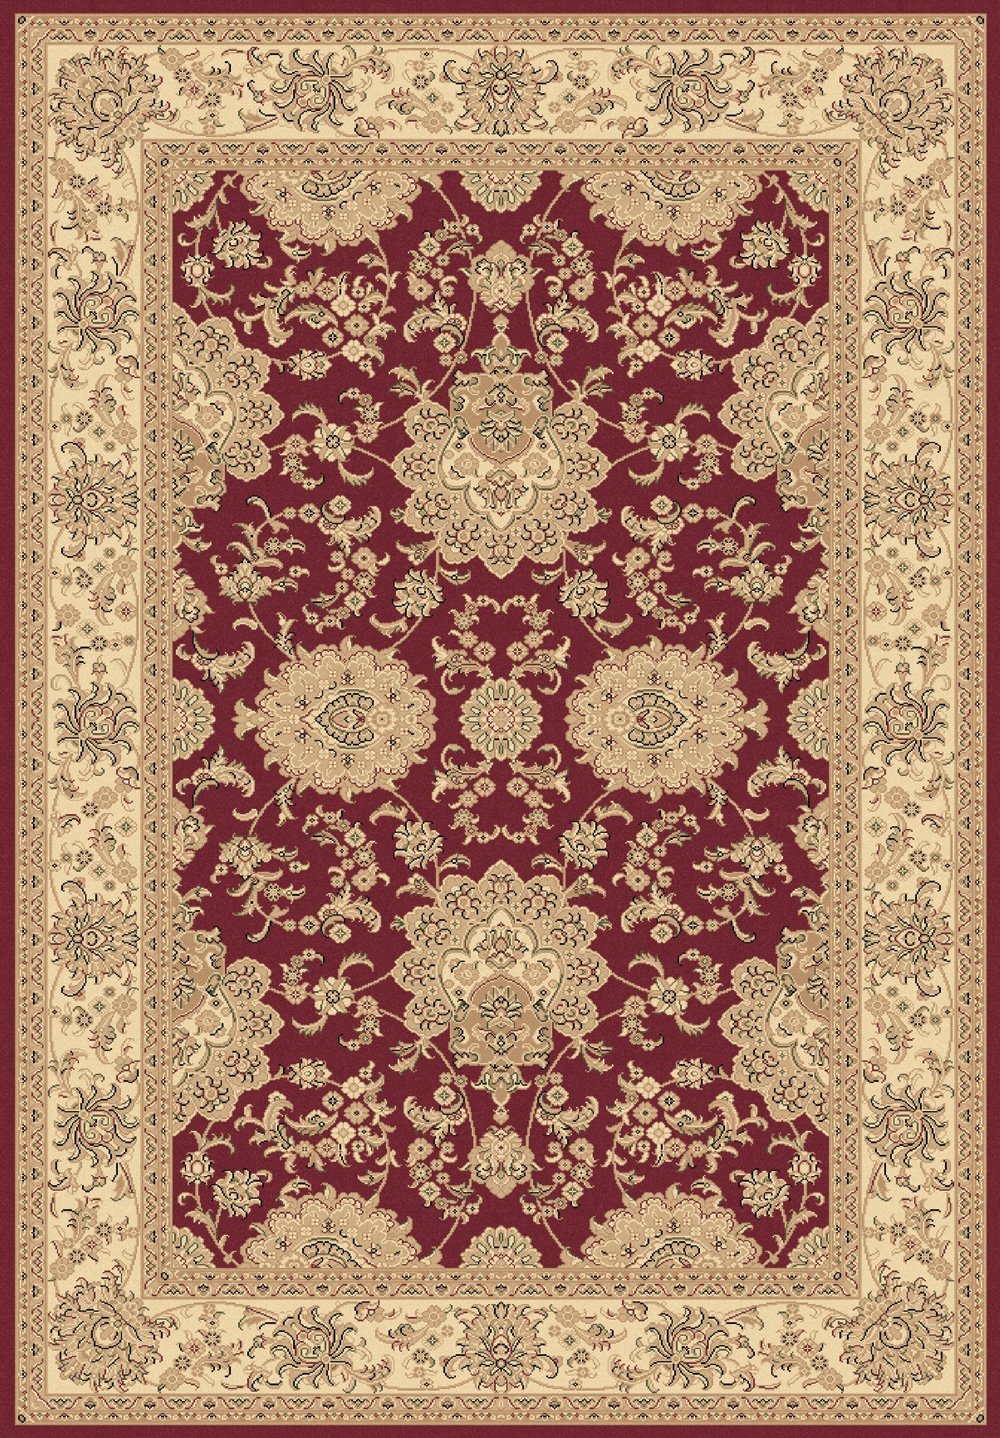 Red 58019 330 Legacy Rug By Dynamic